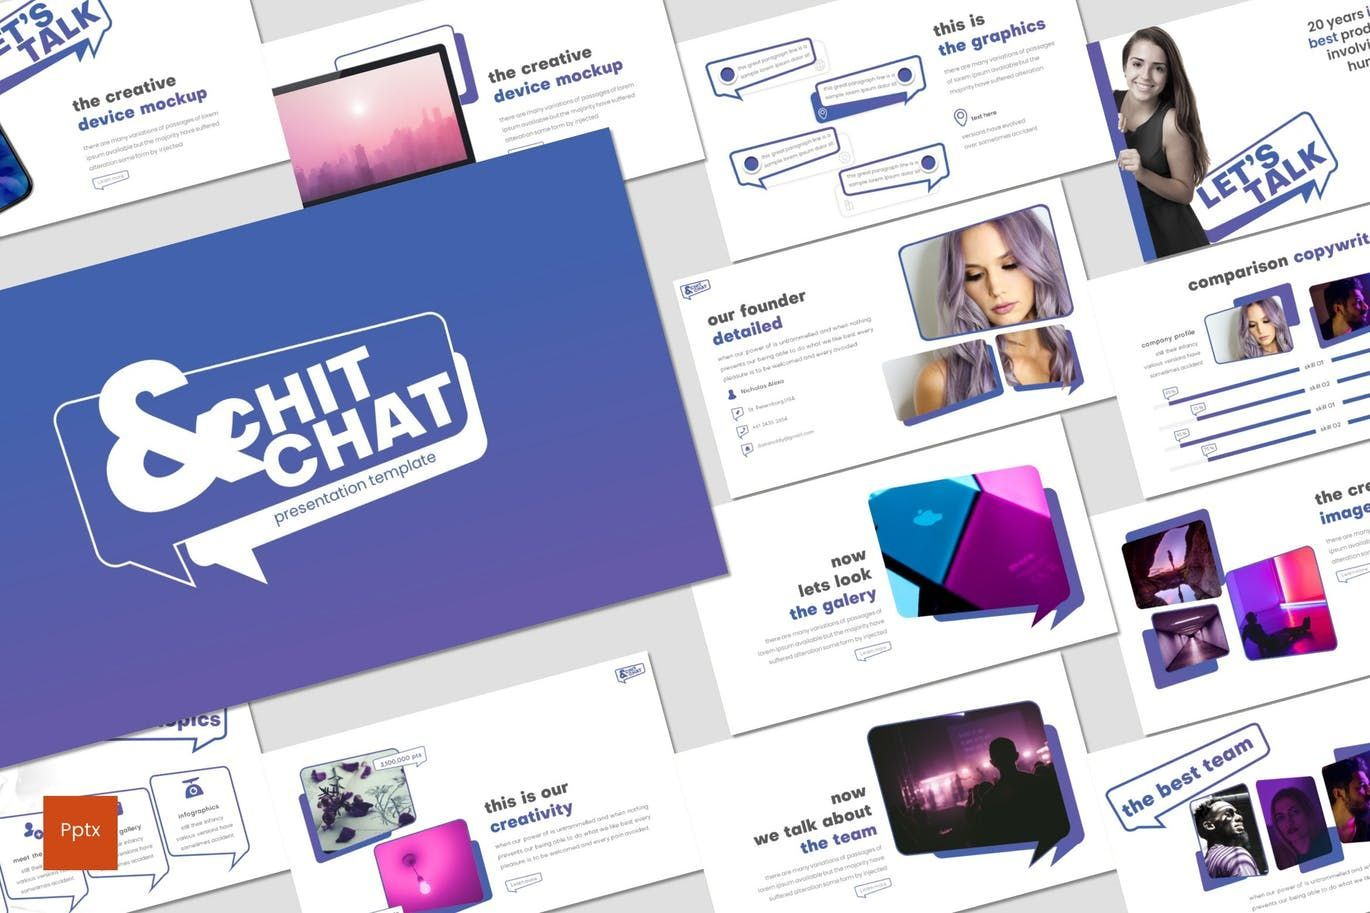 Chit Chat - PowerPoint Template, 07723, Presentation Templates — PoweredTemplate.com